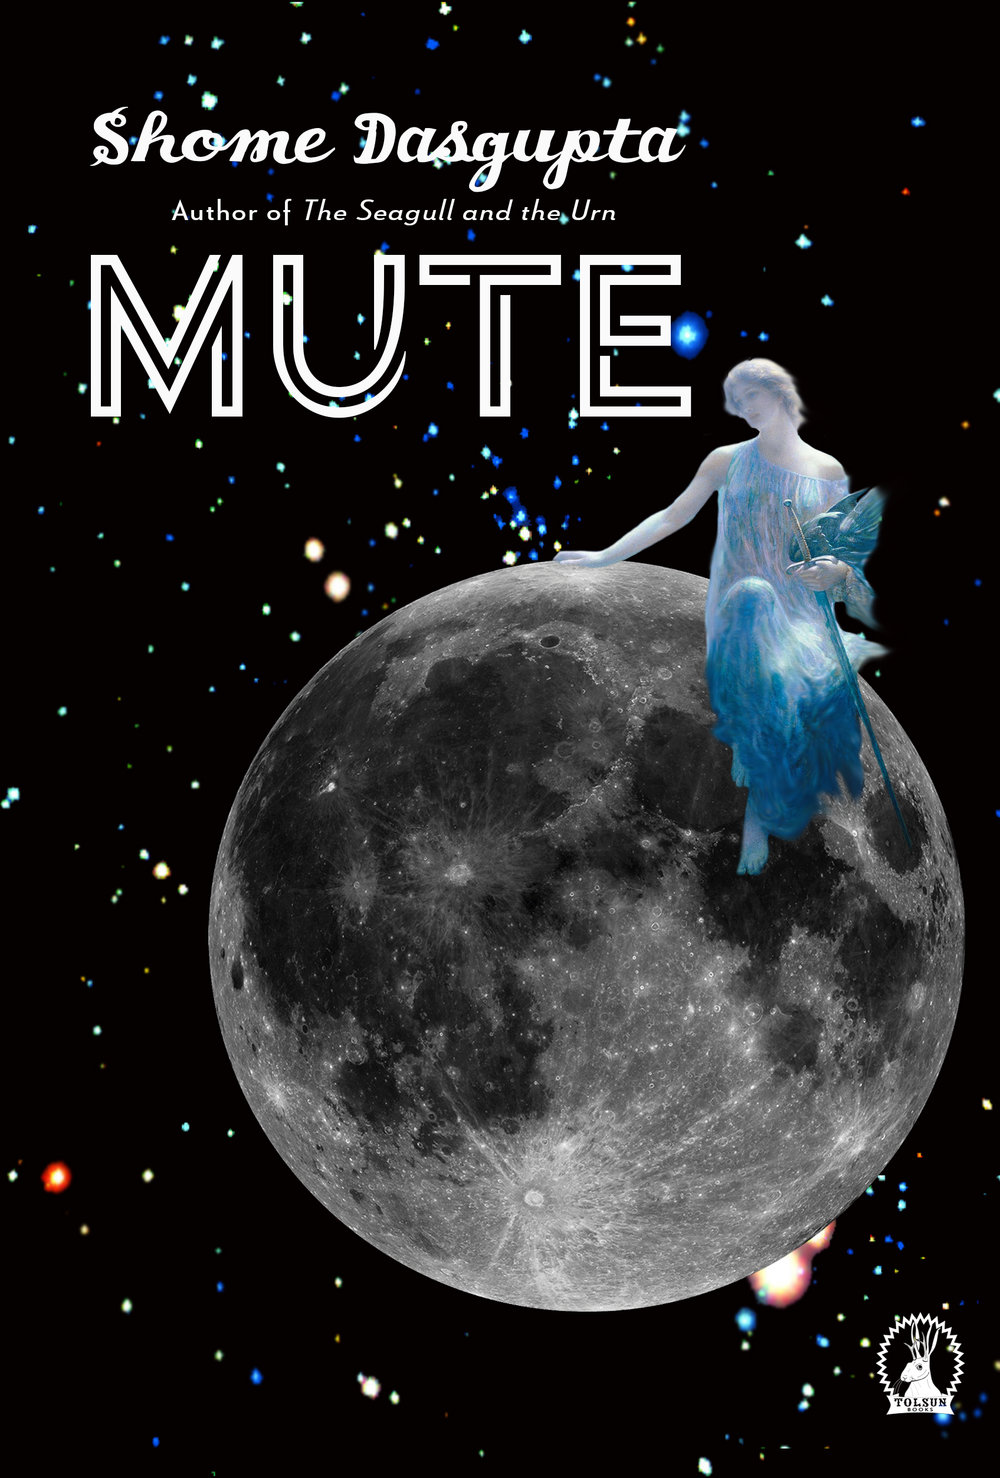 Mute stories by Shome Dasgupta - Release Date September 12th, 2018